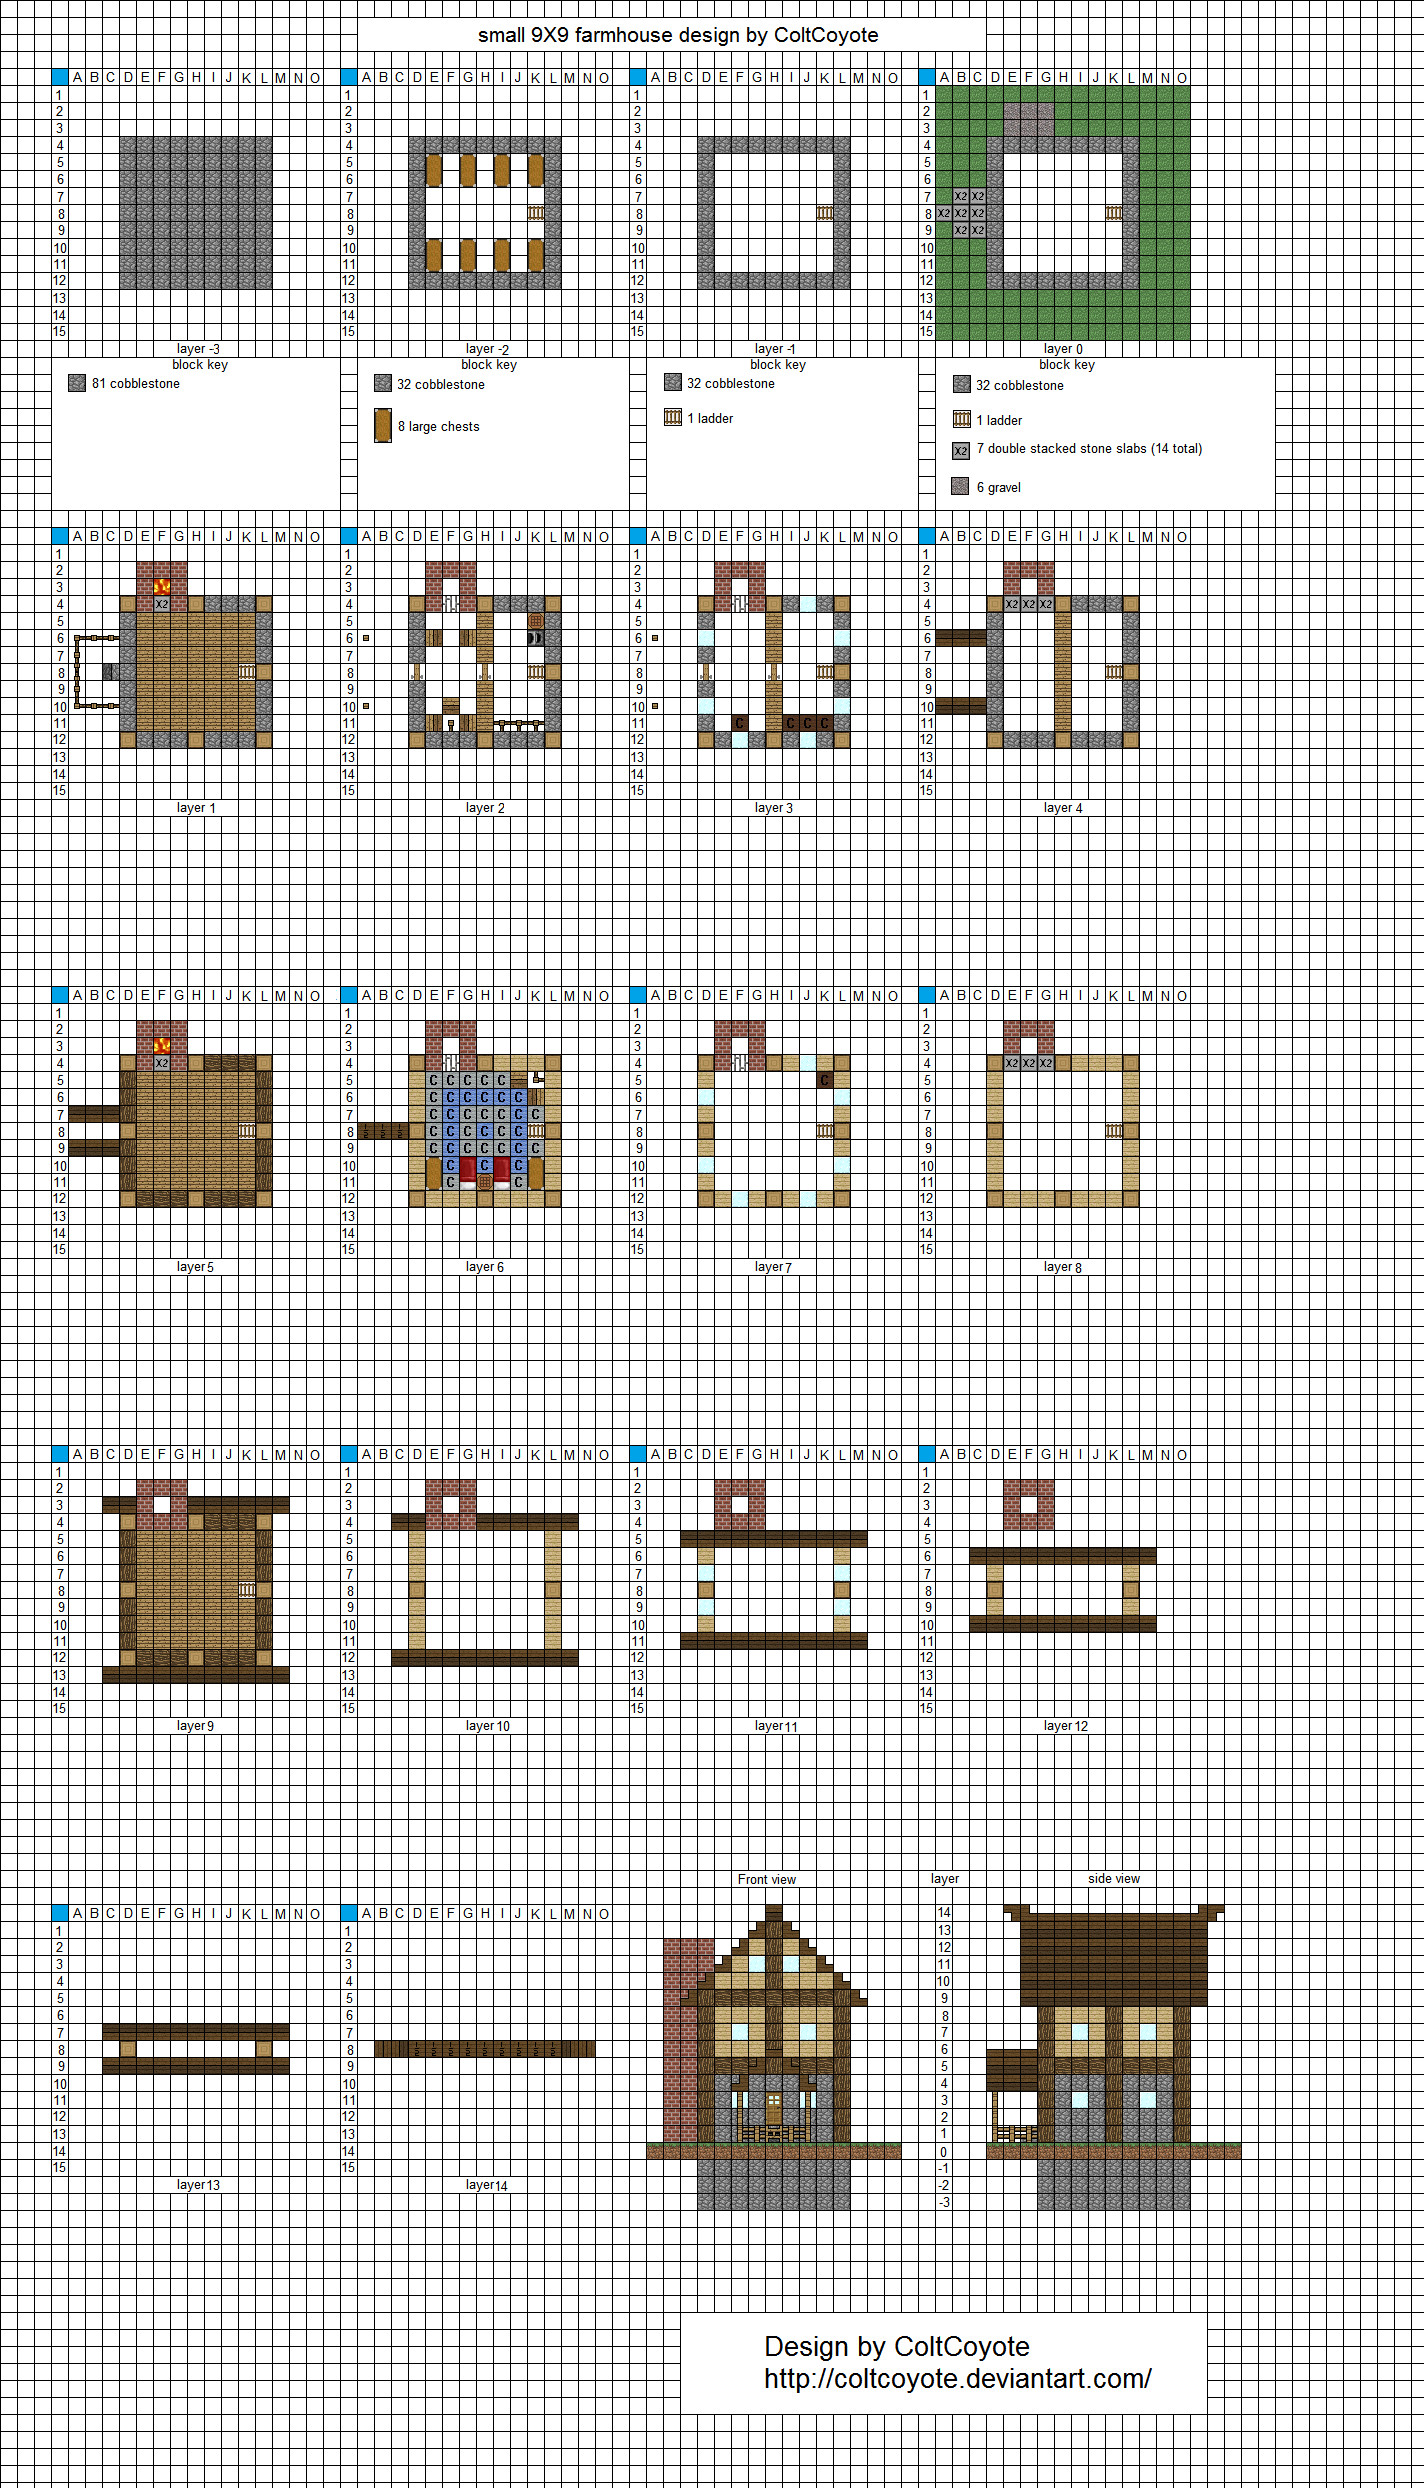 Prototype floorplan layout mk2 wip by coltcoyote on deviantart for Prototype house plan